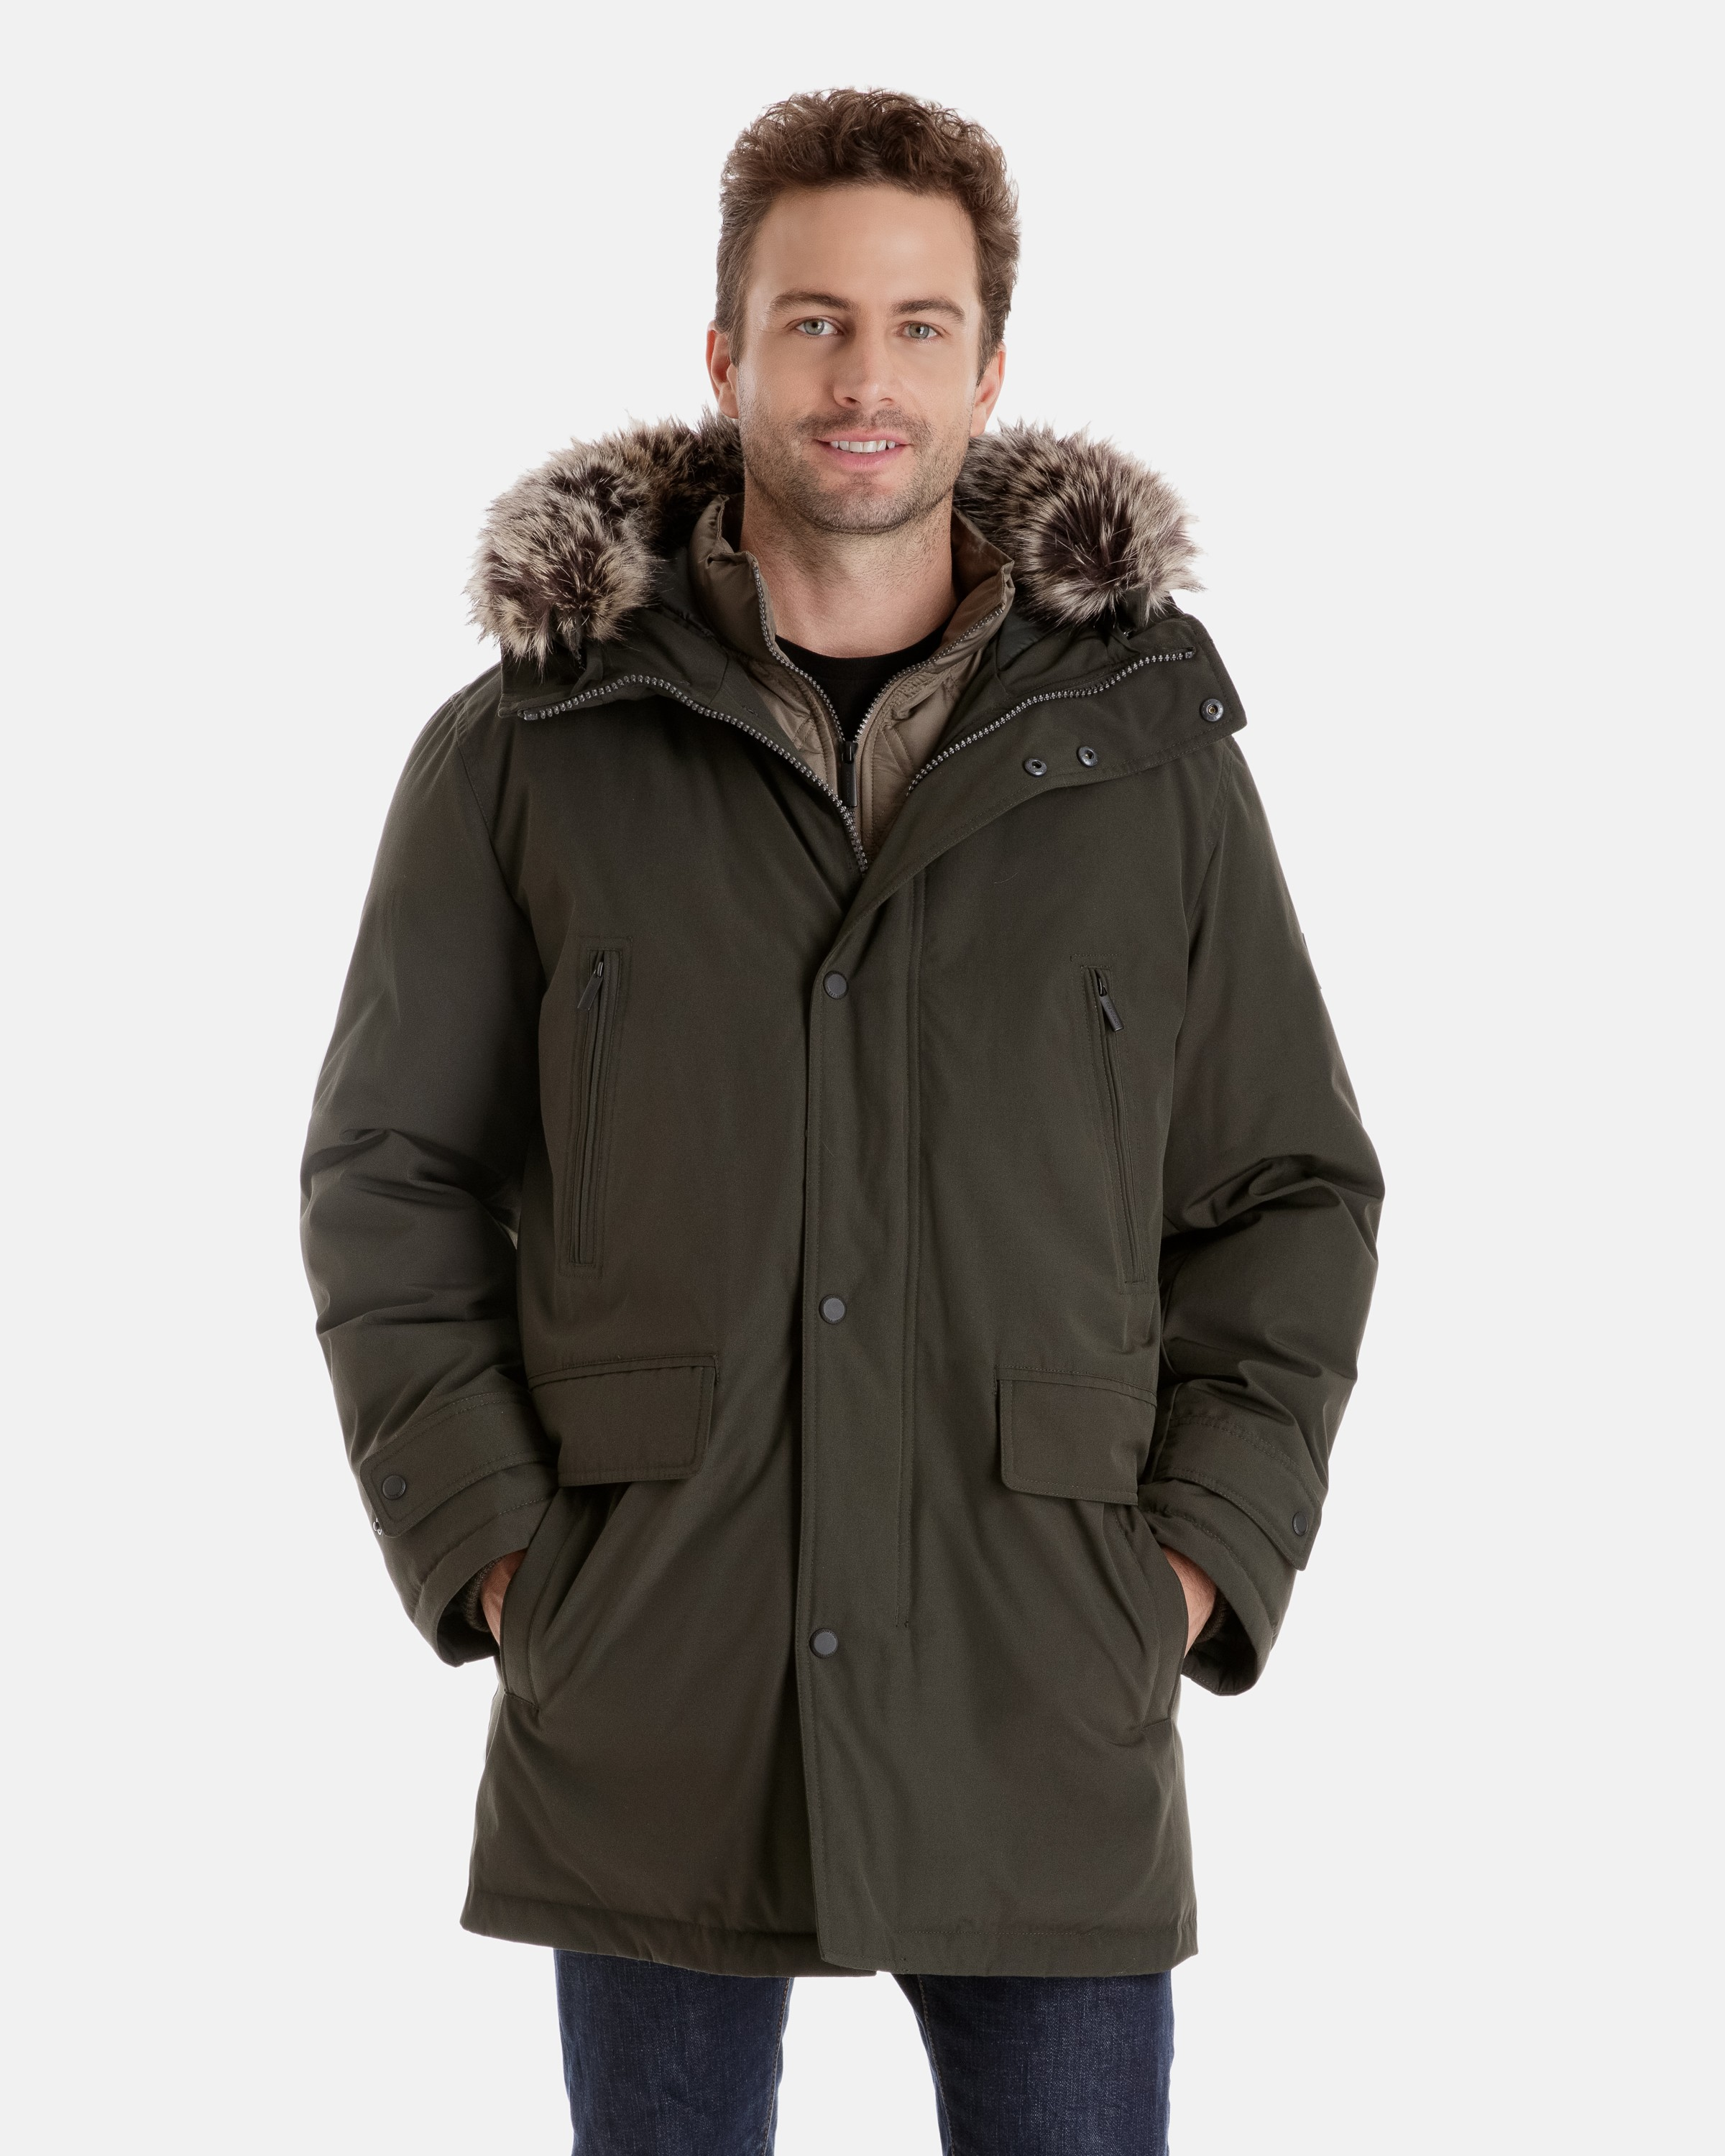 mens winter coats thomas insulated winter parka with inset bib NRYLPIN